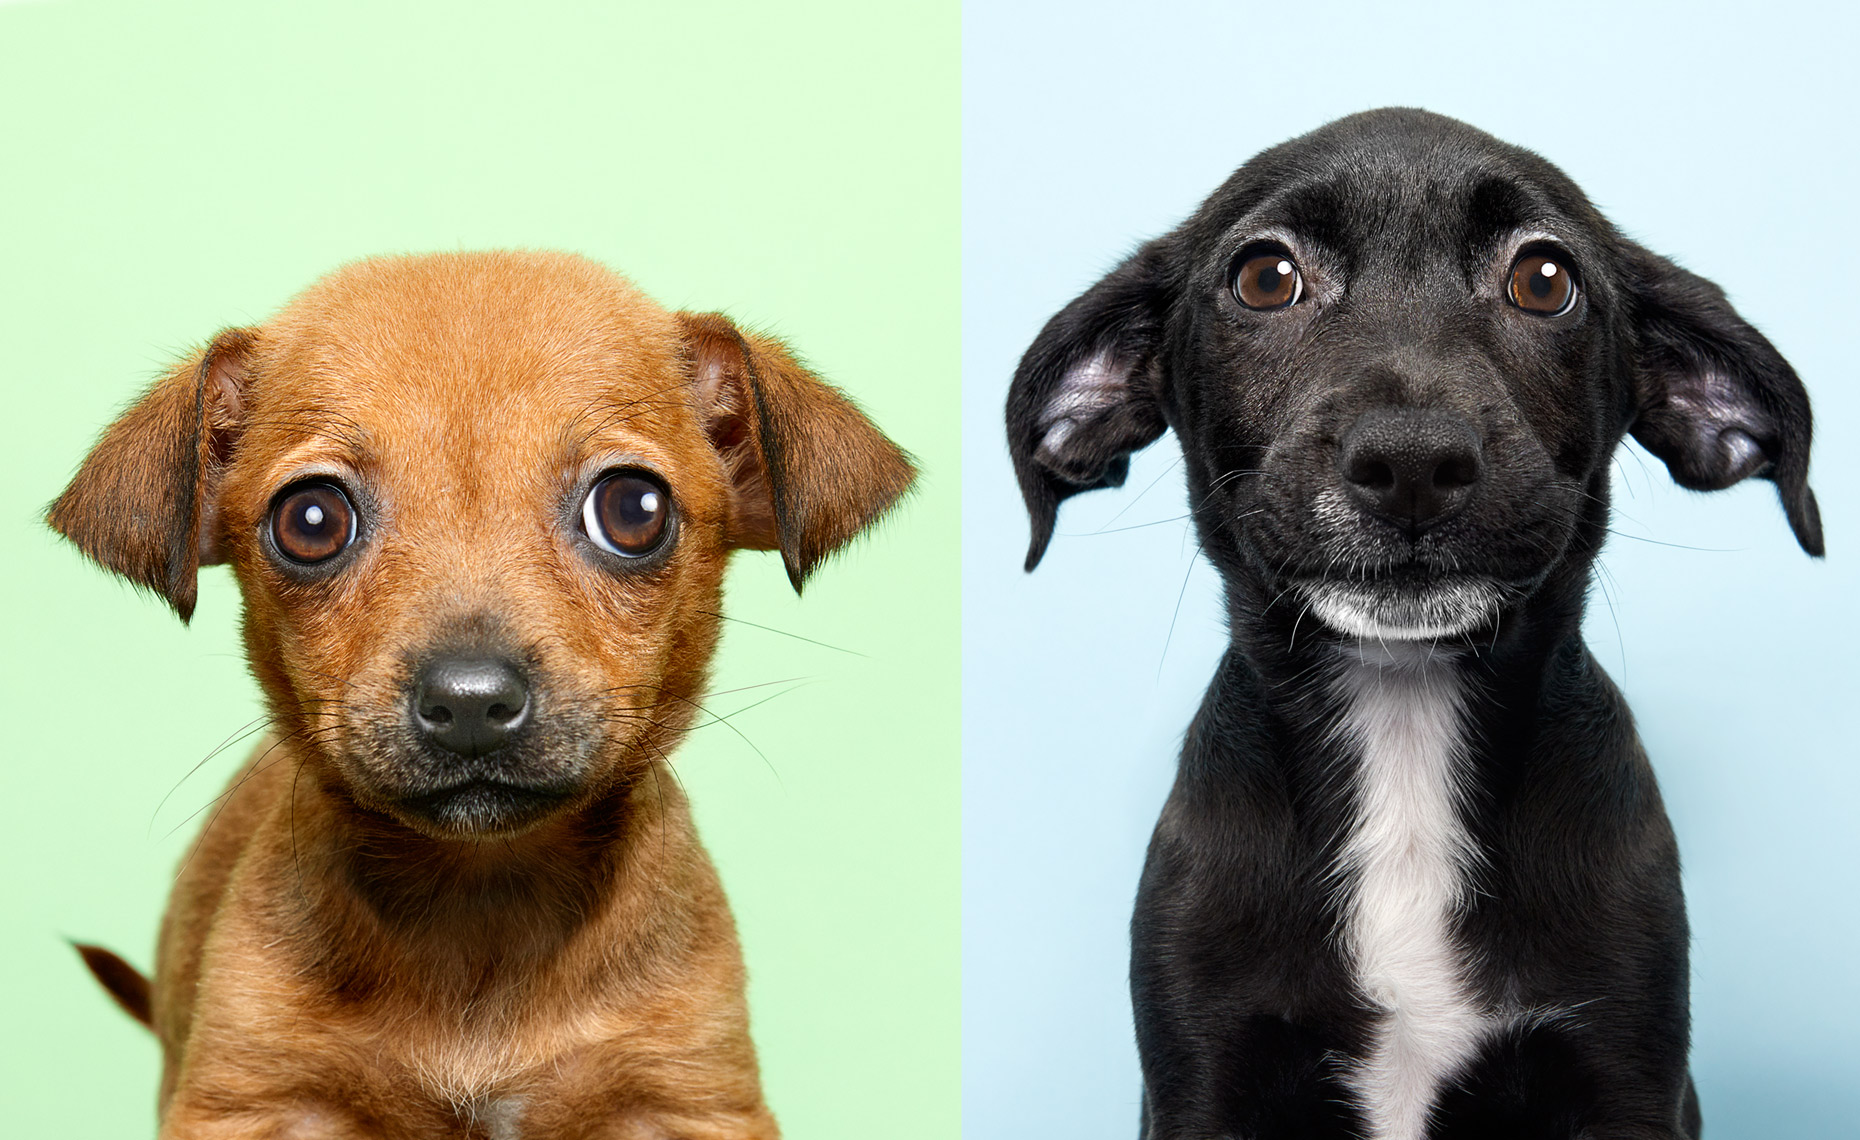 Puppy portraits on colorful backgrounds